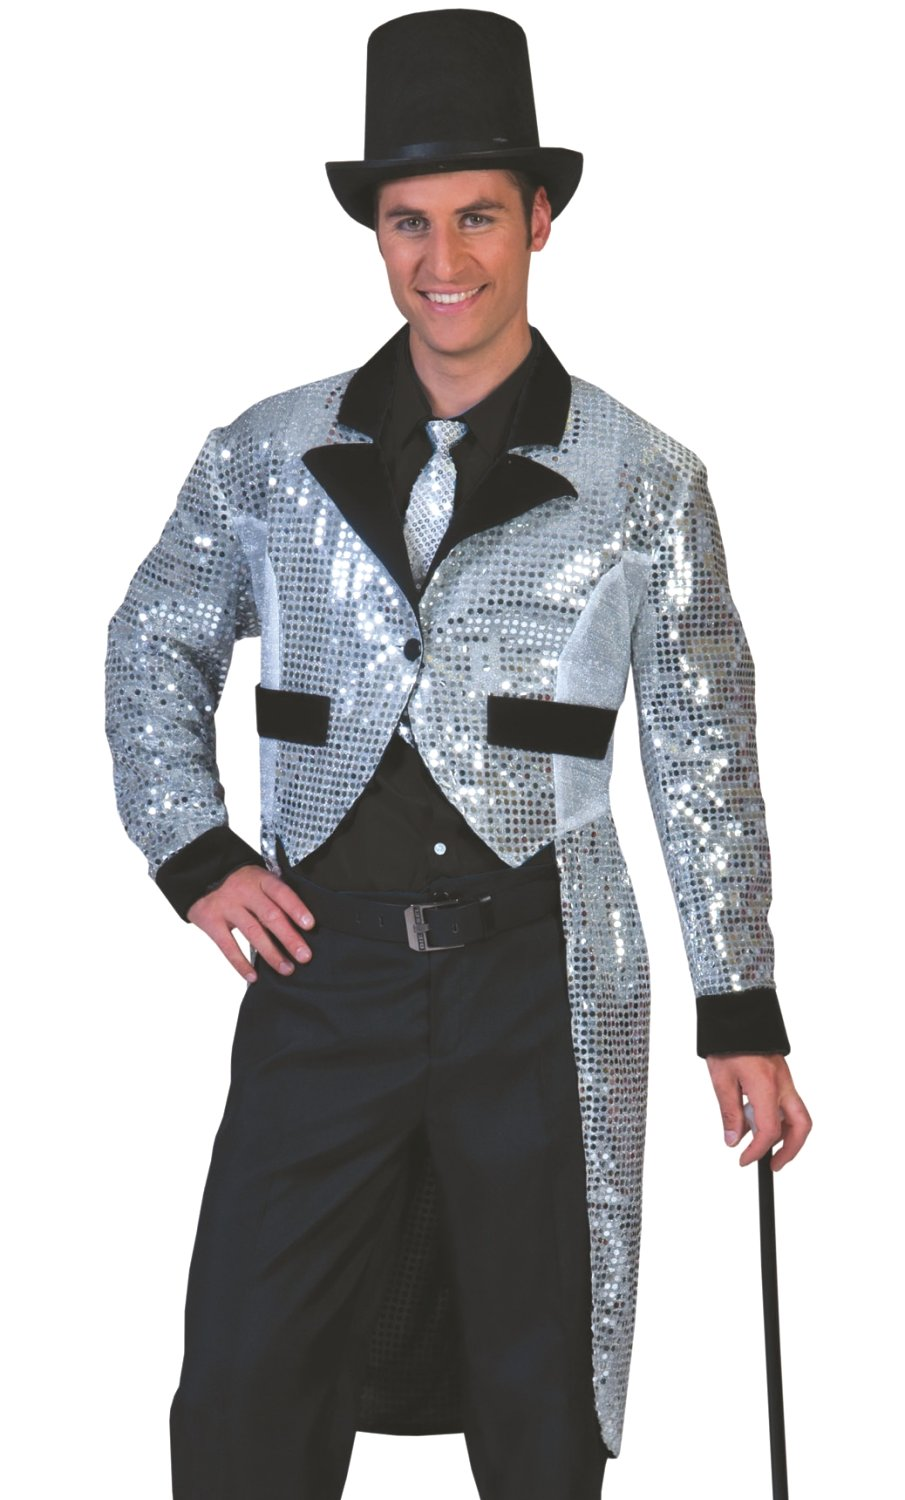 Veste-queue-de-pie-Homme-argent